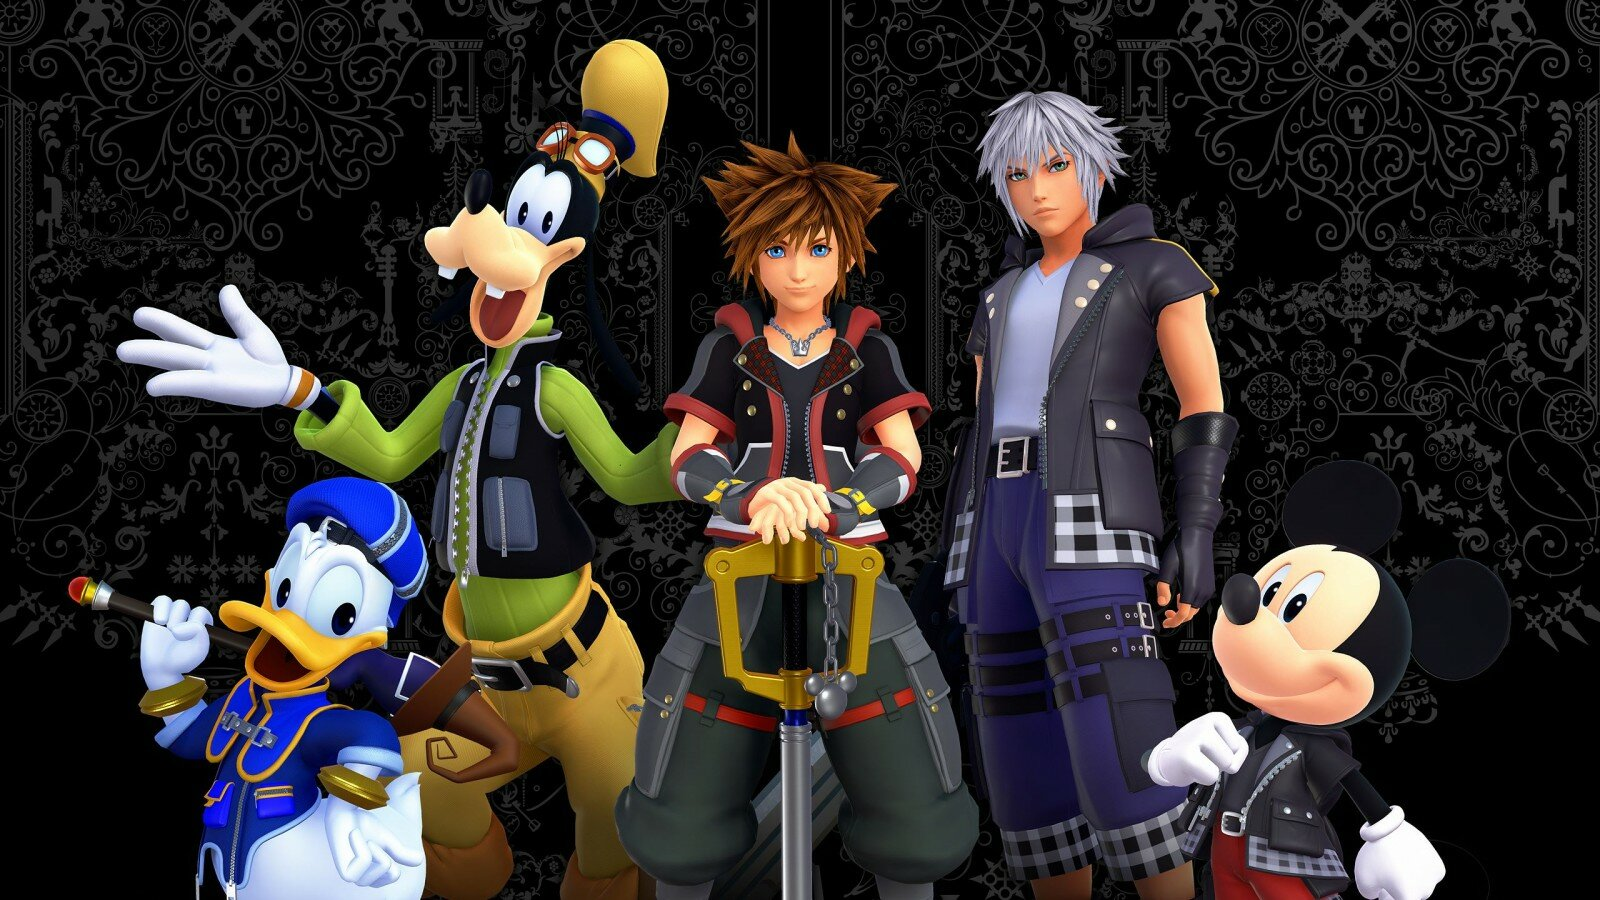 the best kingdom hearts games ranked, best kingdom hearts, series, ranking, kingdom hearts 2, kingdom hearts 3, birth by sleep